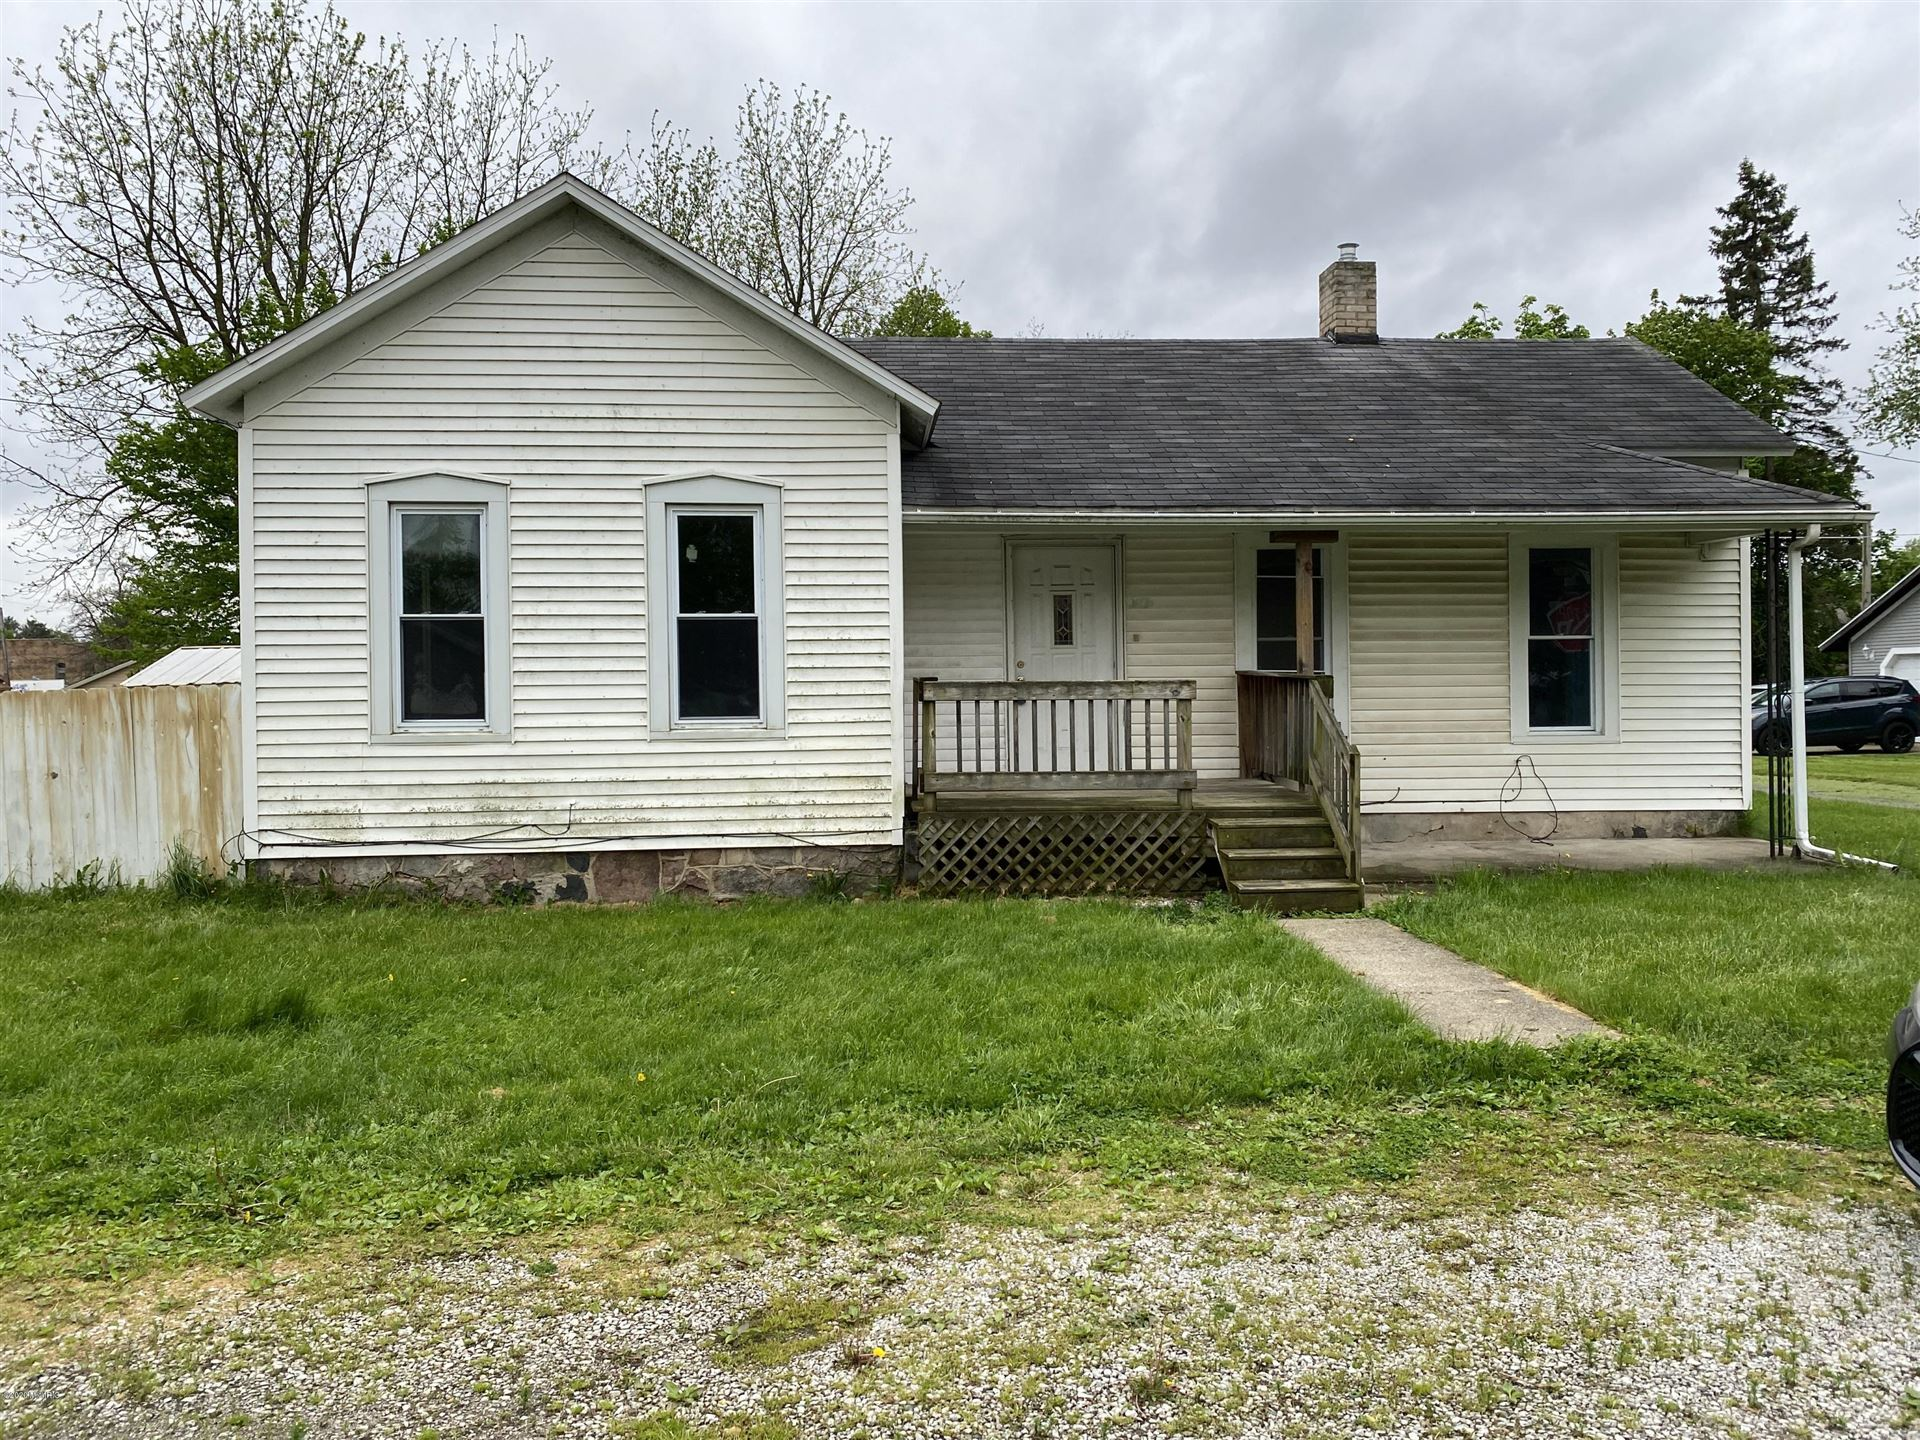 107 W Michigan Avenue, White Pigeon, MI 49099 - MLS#: 20017572